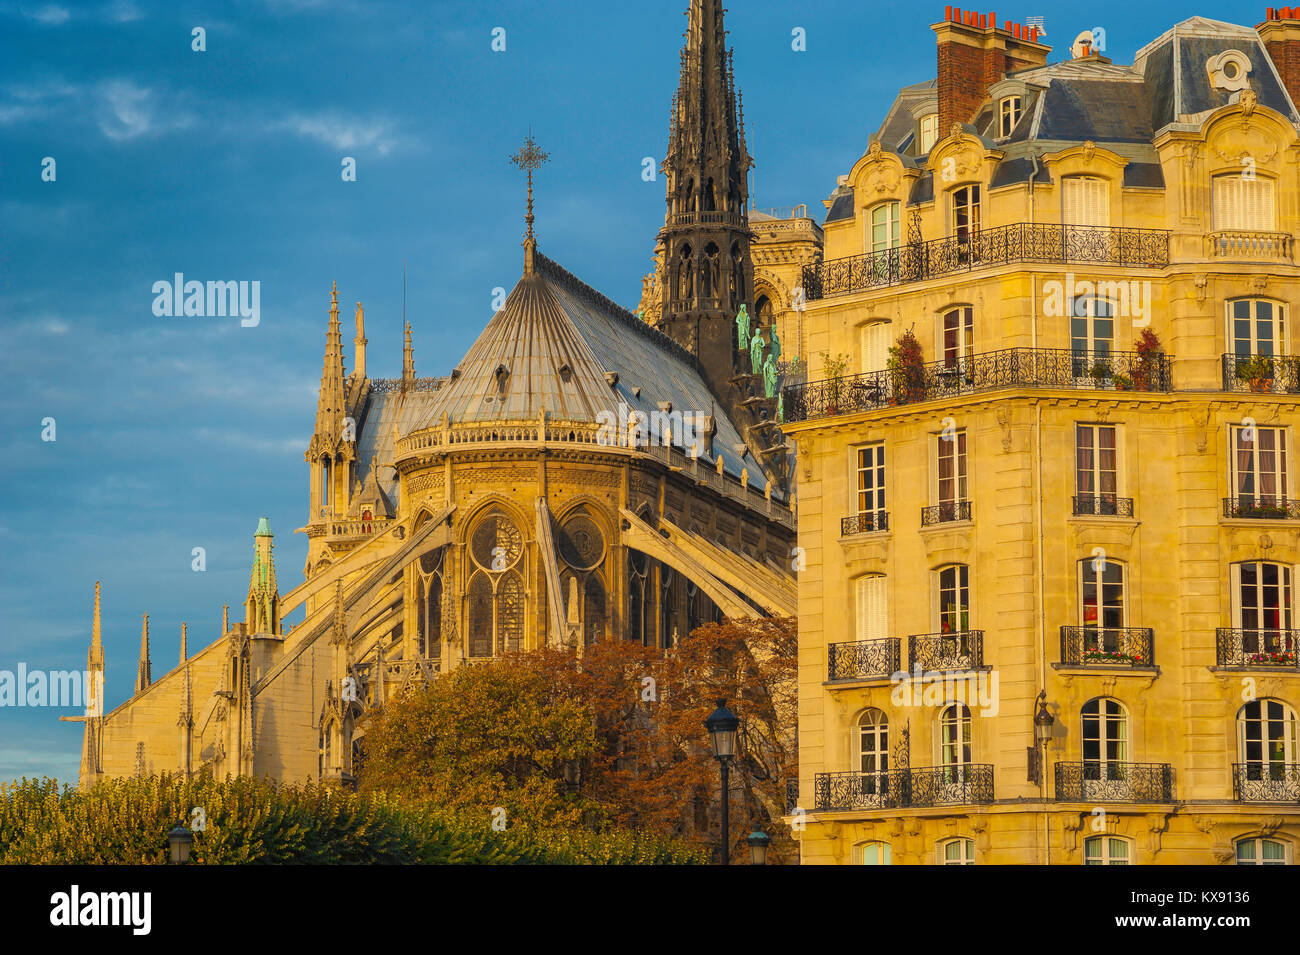 Notre Dame Paris, view at sunset of the spire and roof of Notre Dame Cathedral sited alongside a Haussmann building, - Stock Image